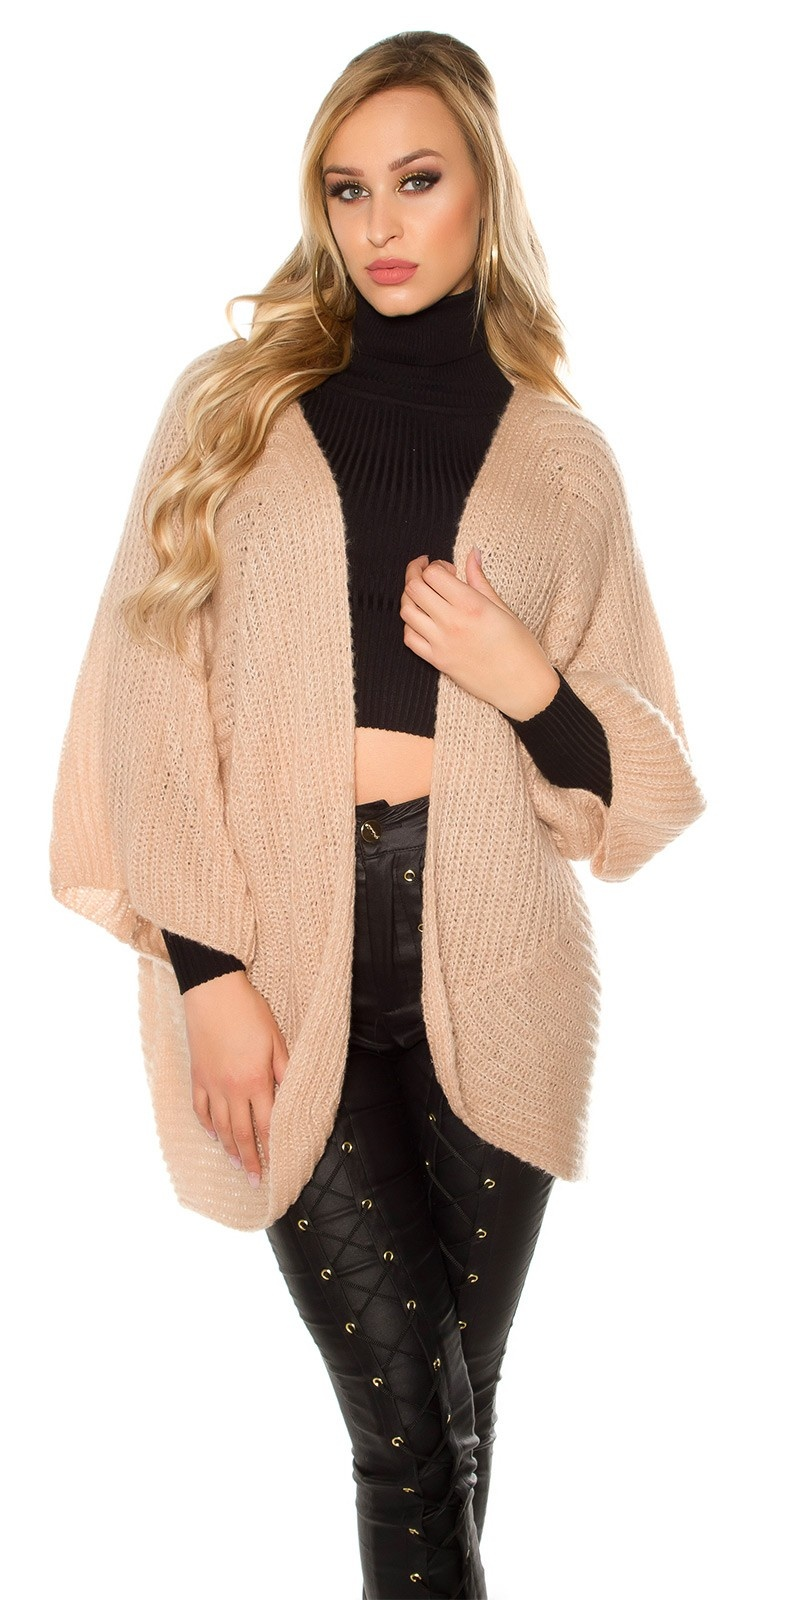 Trendy XXL loose knit jacket Antiquepink